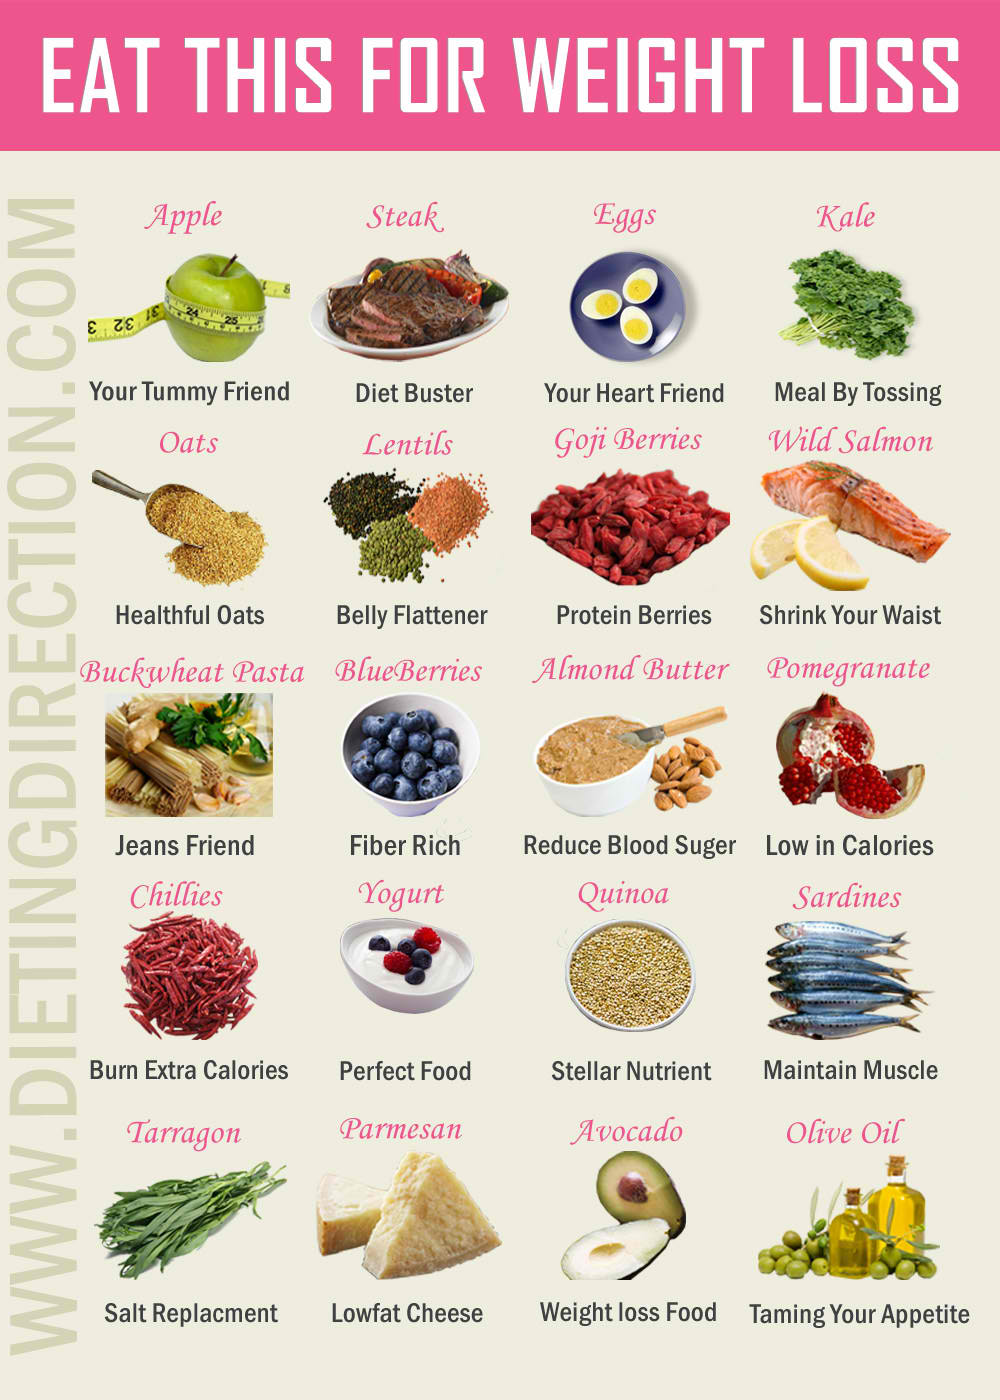 Low Calorie Food Lists for Weight Loss- Weight-loss Food Guide